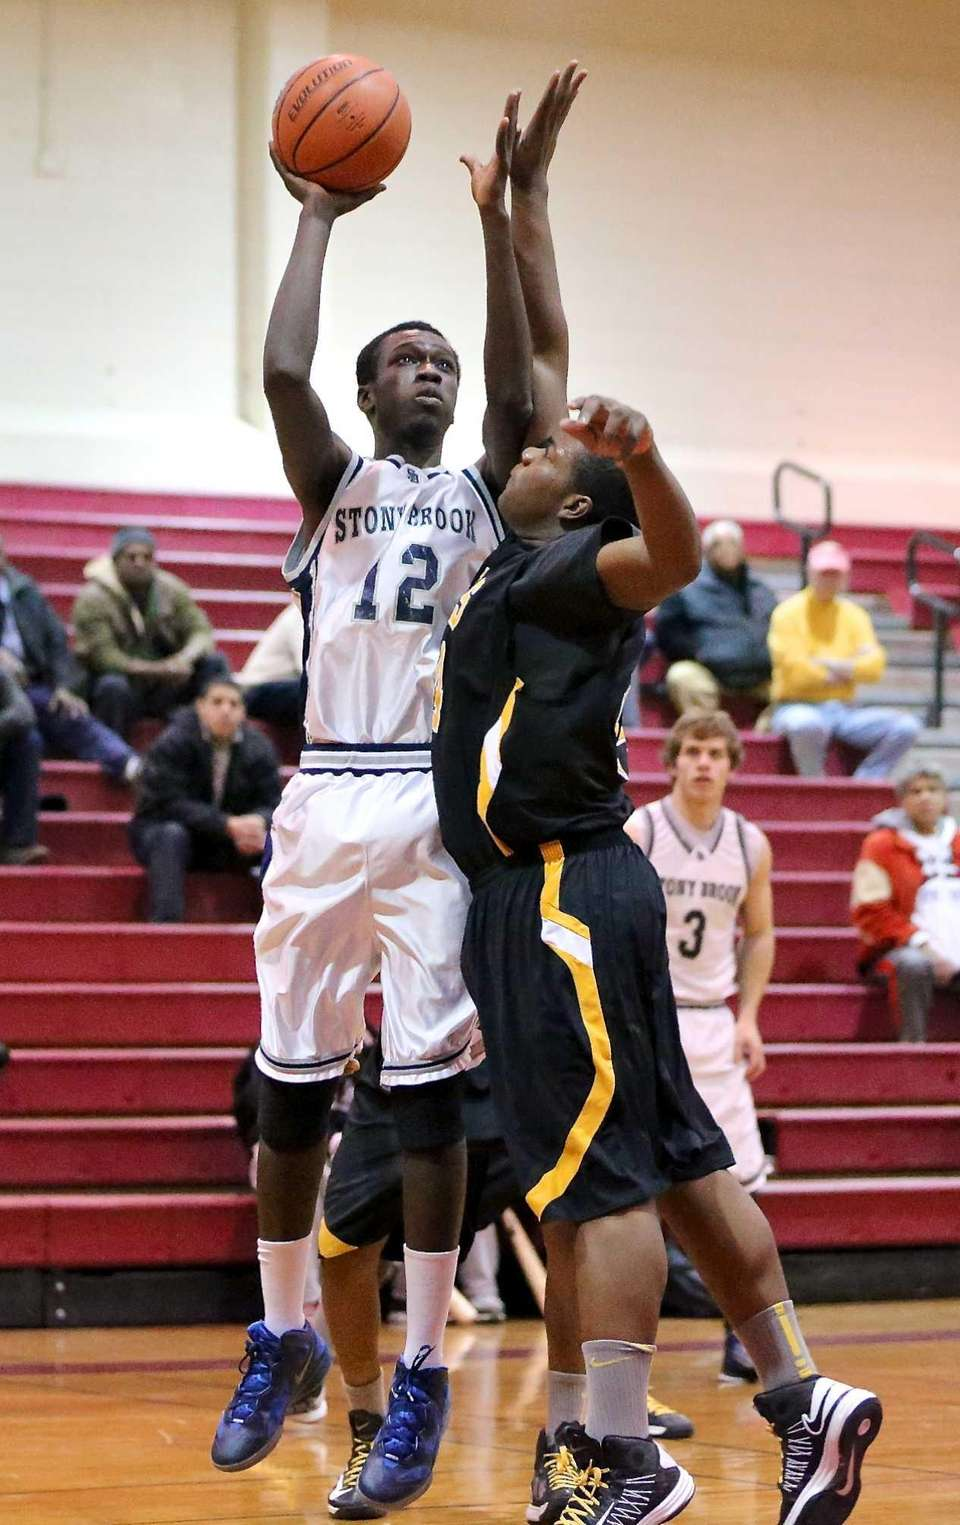 Stony Brook's Michael Dingammadji gets fouled on the